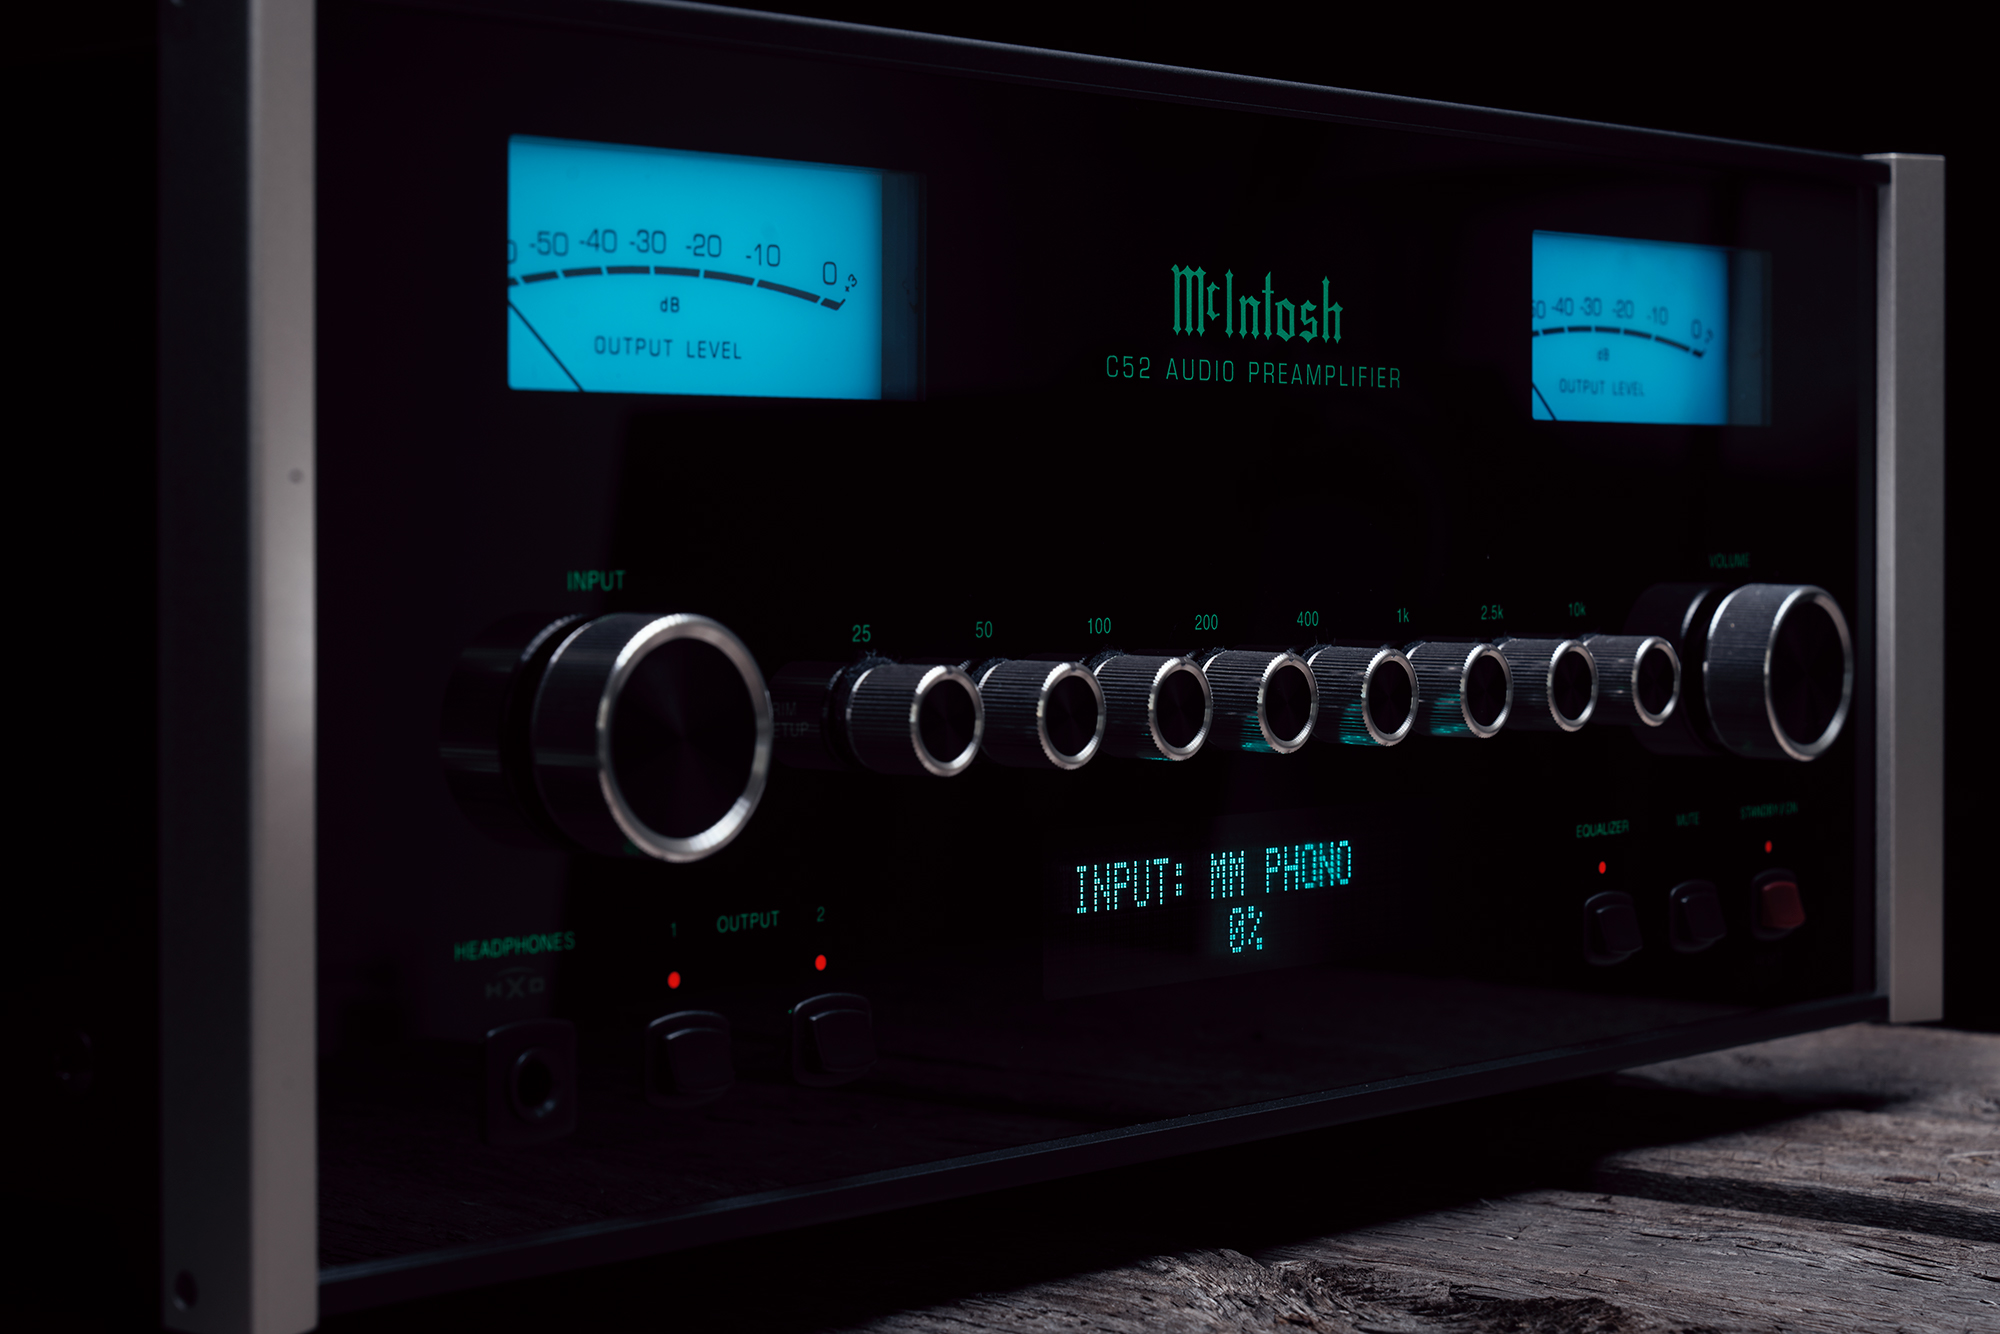 Mcintosh C52 Stereo Preamplifier Band 2